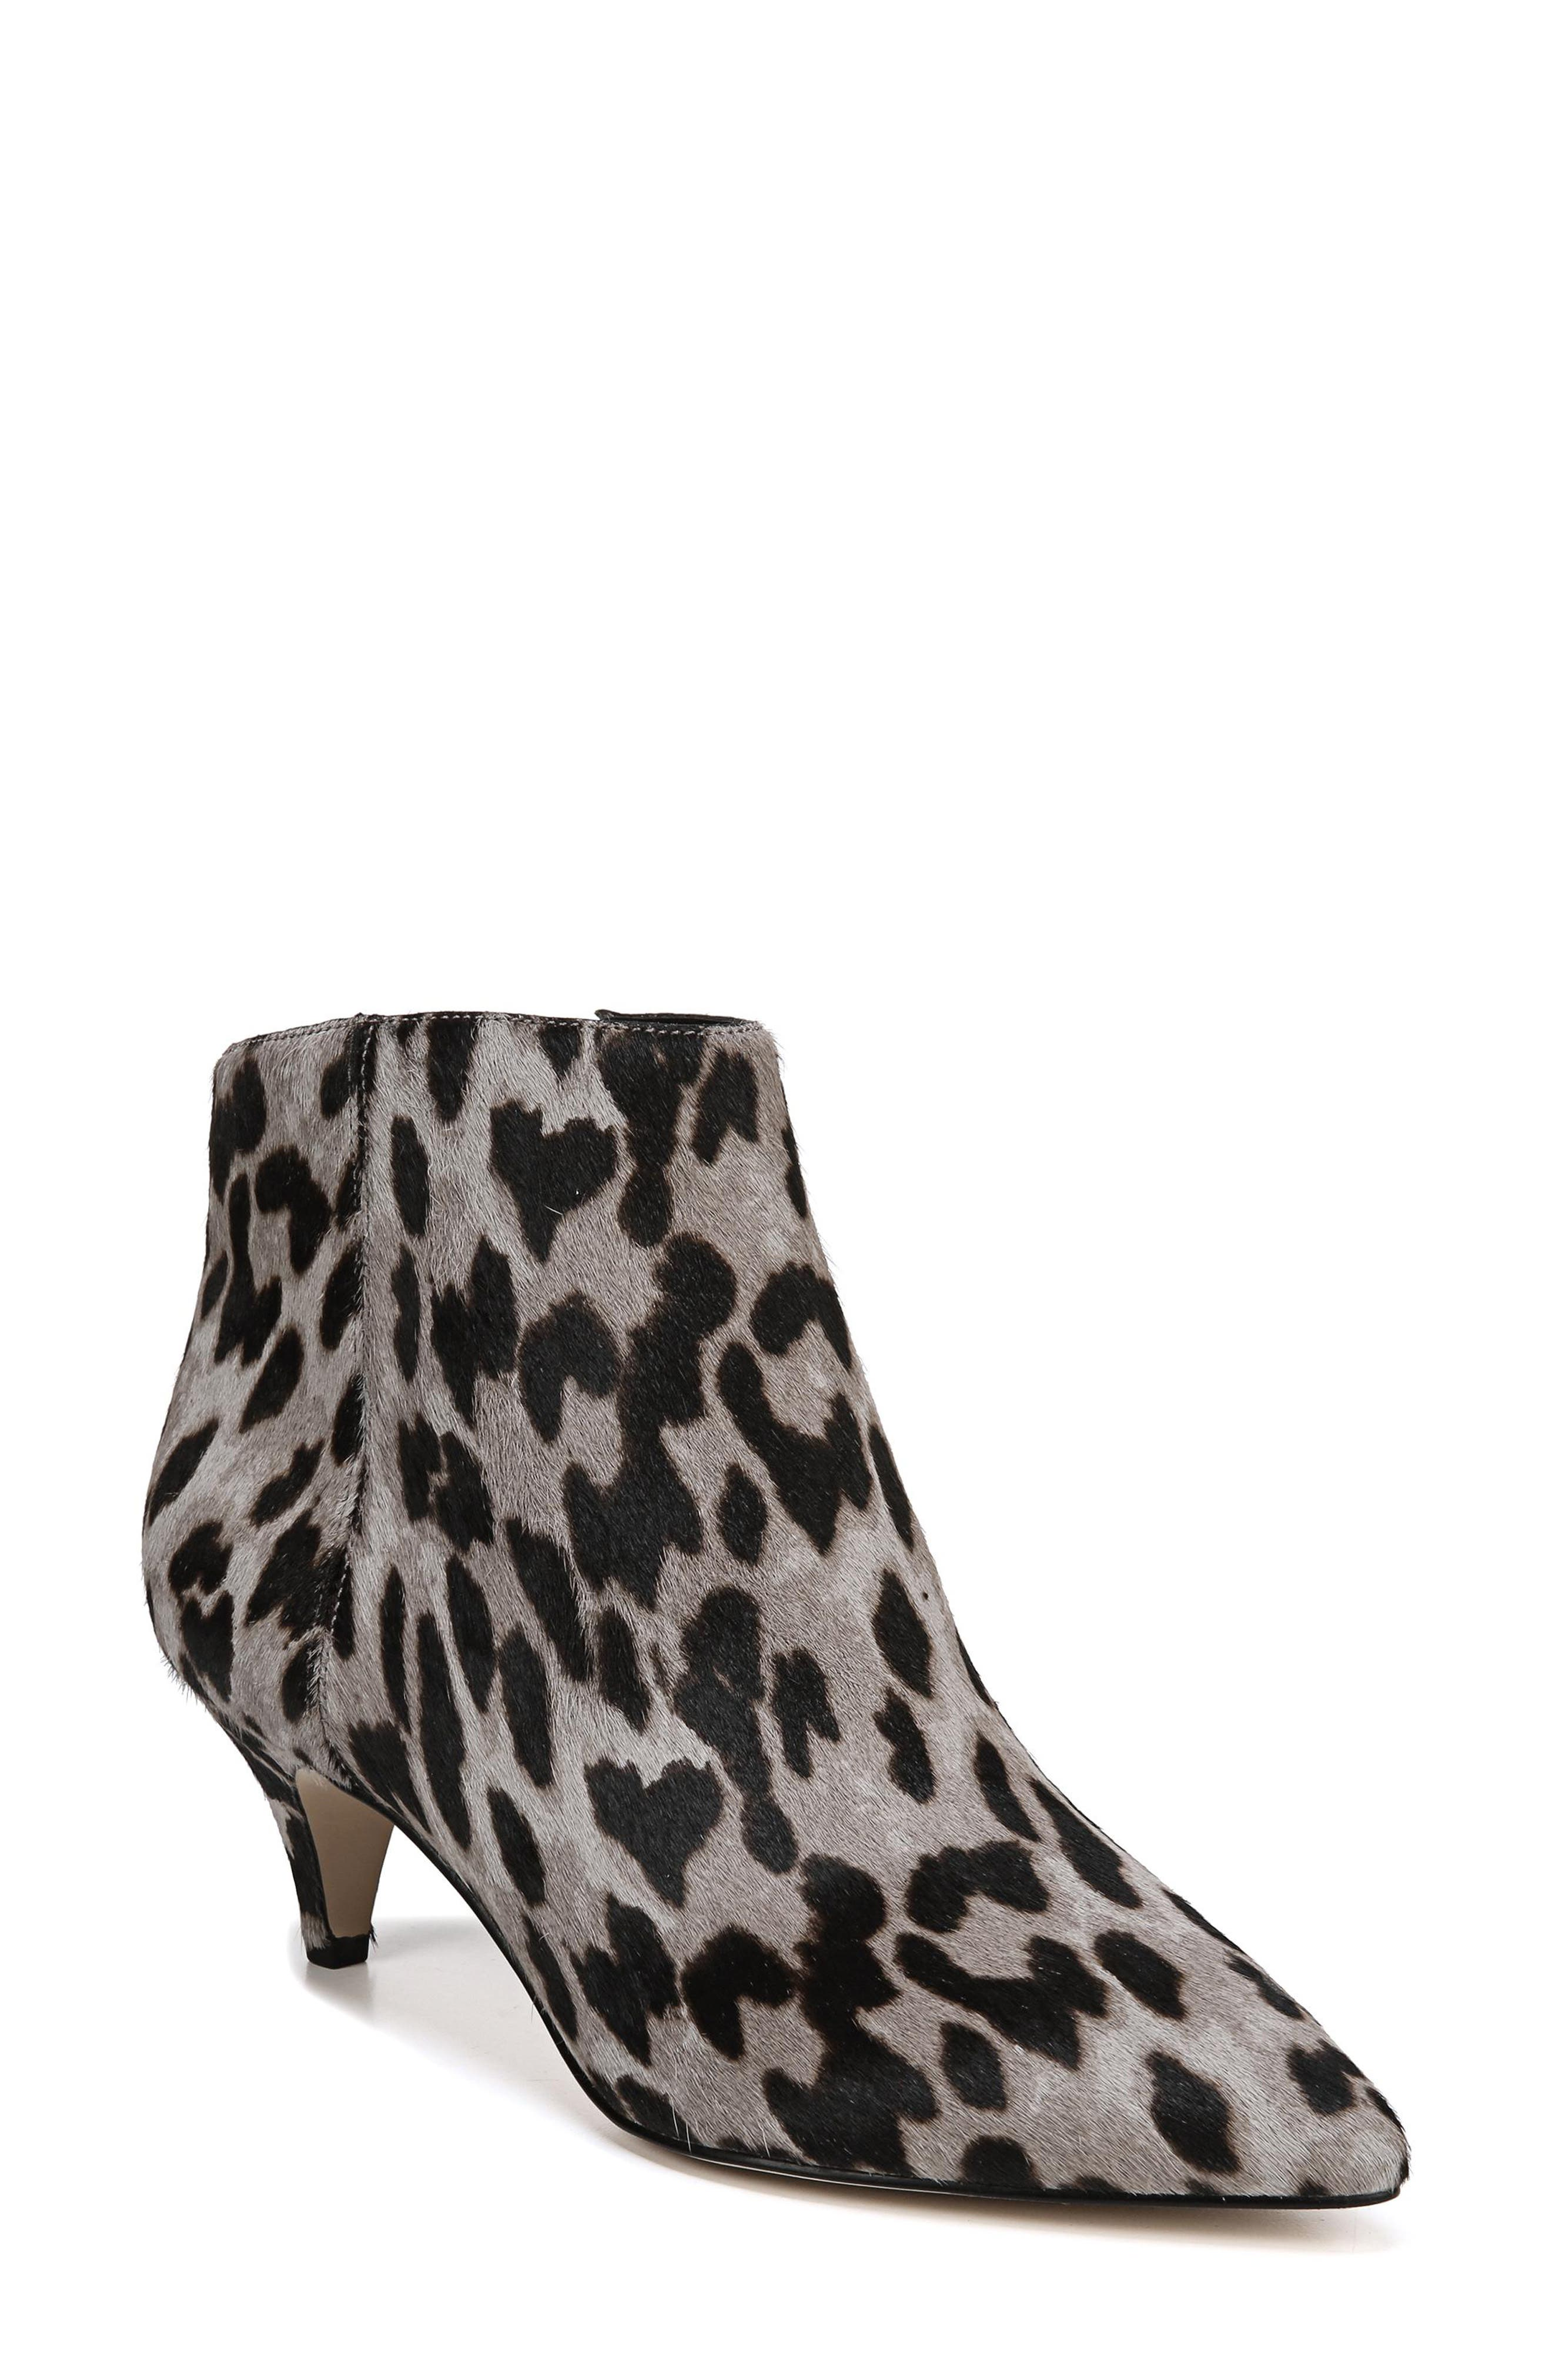 Kinzey Genuine Calf Hair Pointy Toe Bootie,                             Main thumbnail 1, color,                             GREY LEOPARD BRAHMA HAIR